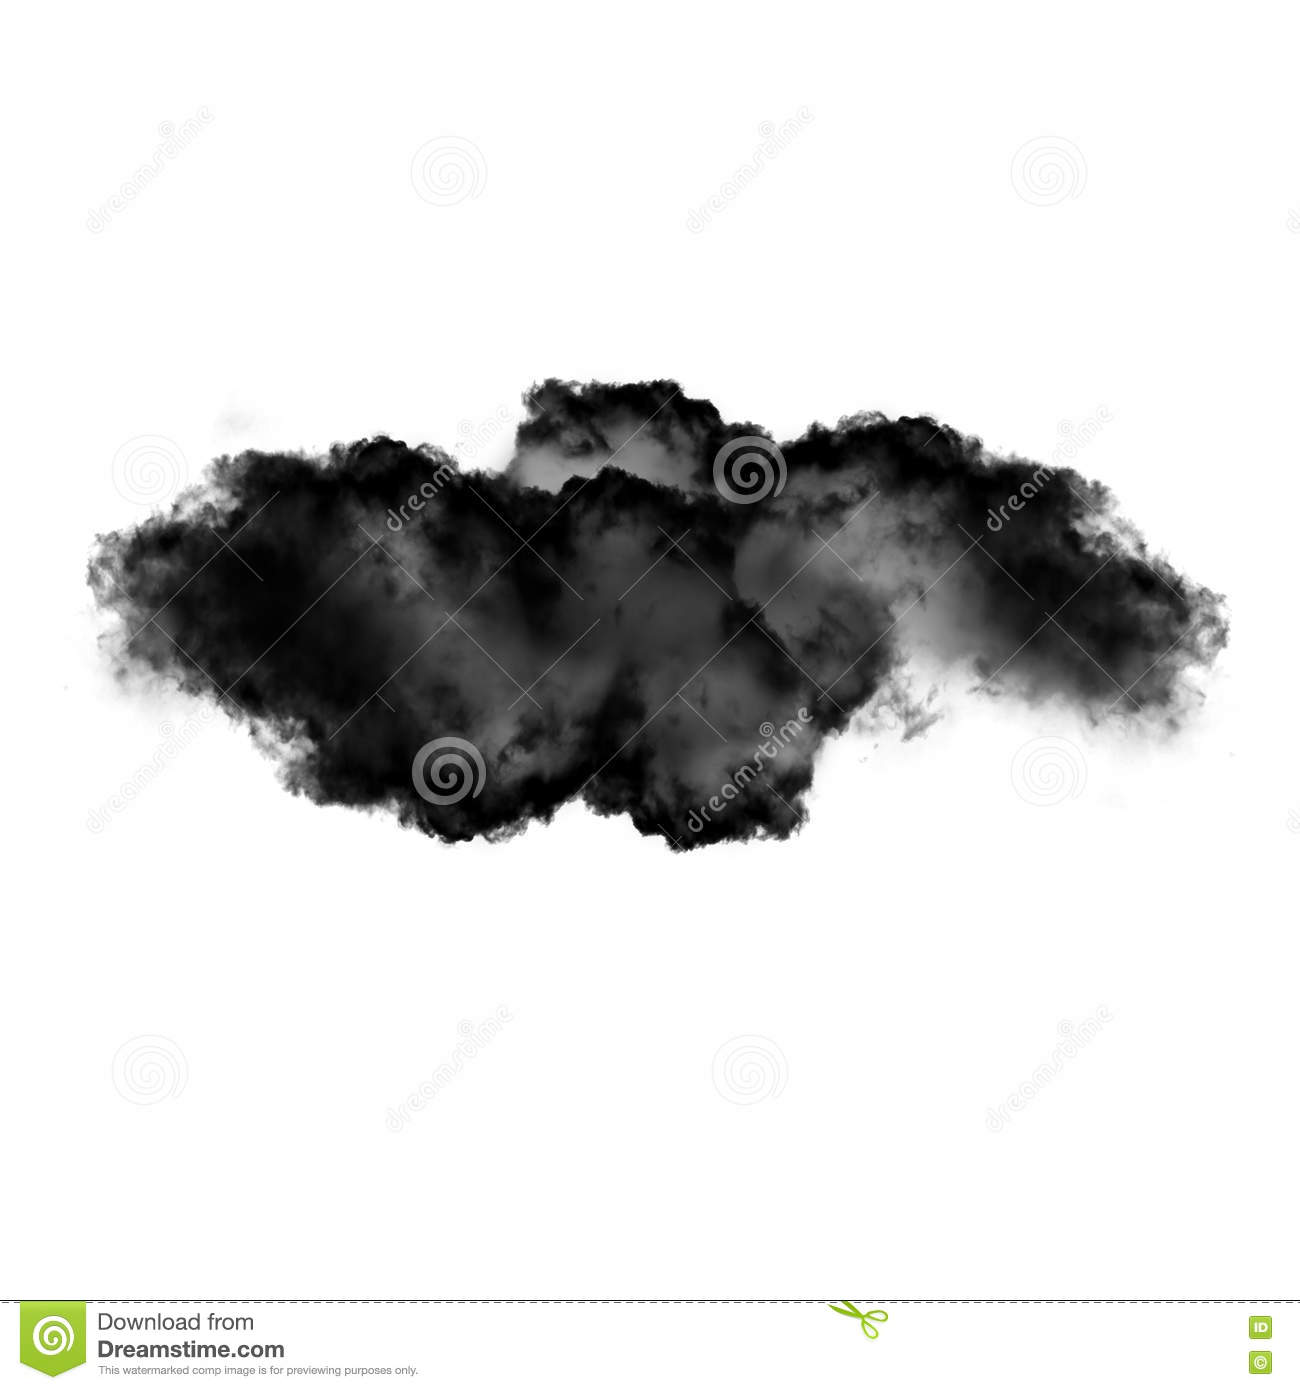 Black cloud or smoke isolated over white background